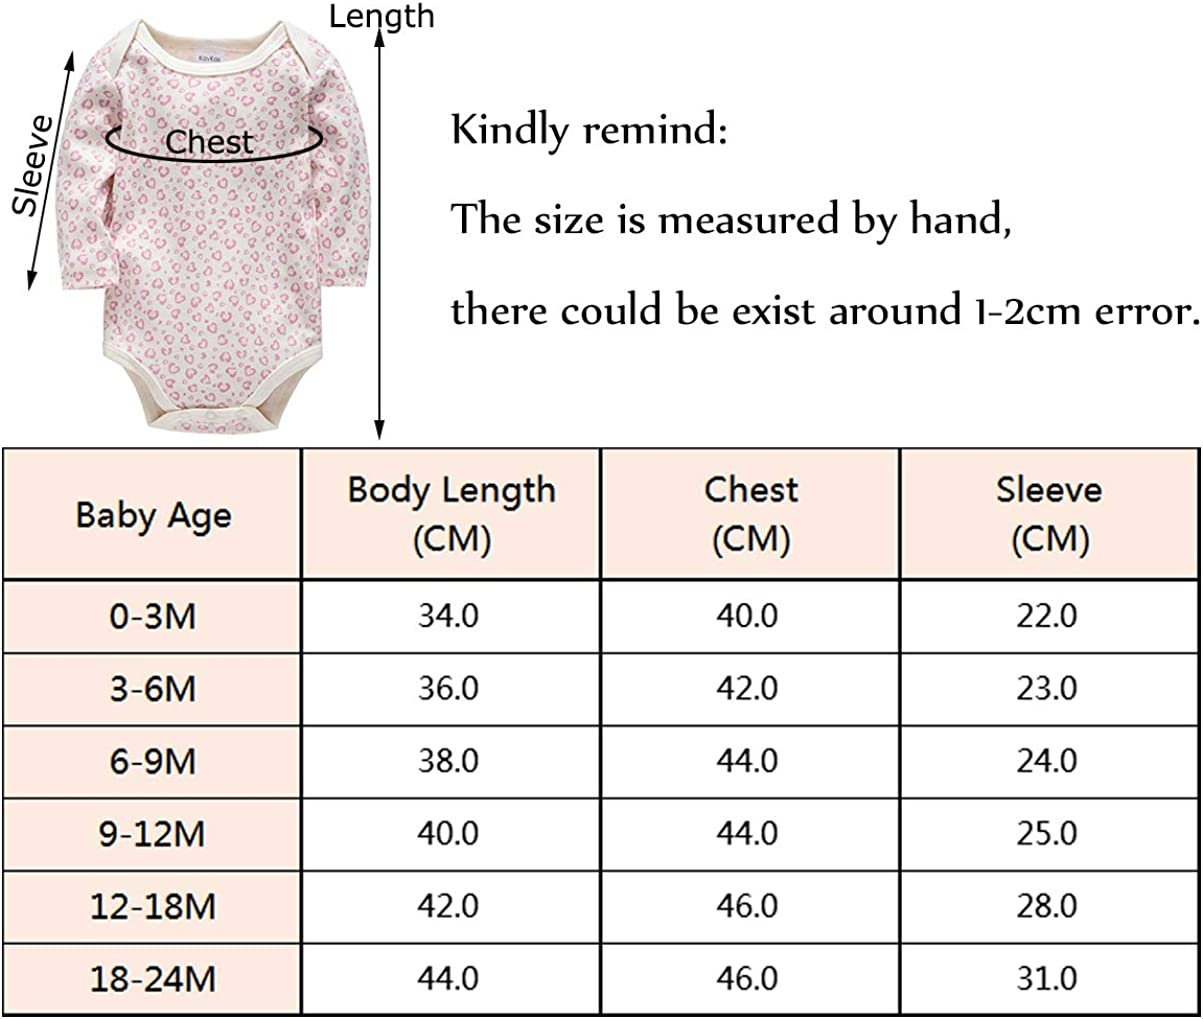 kavkas Baby Long Sleeve Onesies Infant Soft Cotton Bodysuit Undershirts 3 Pack Cute Vest for Boys and Girls 0-24 Months